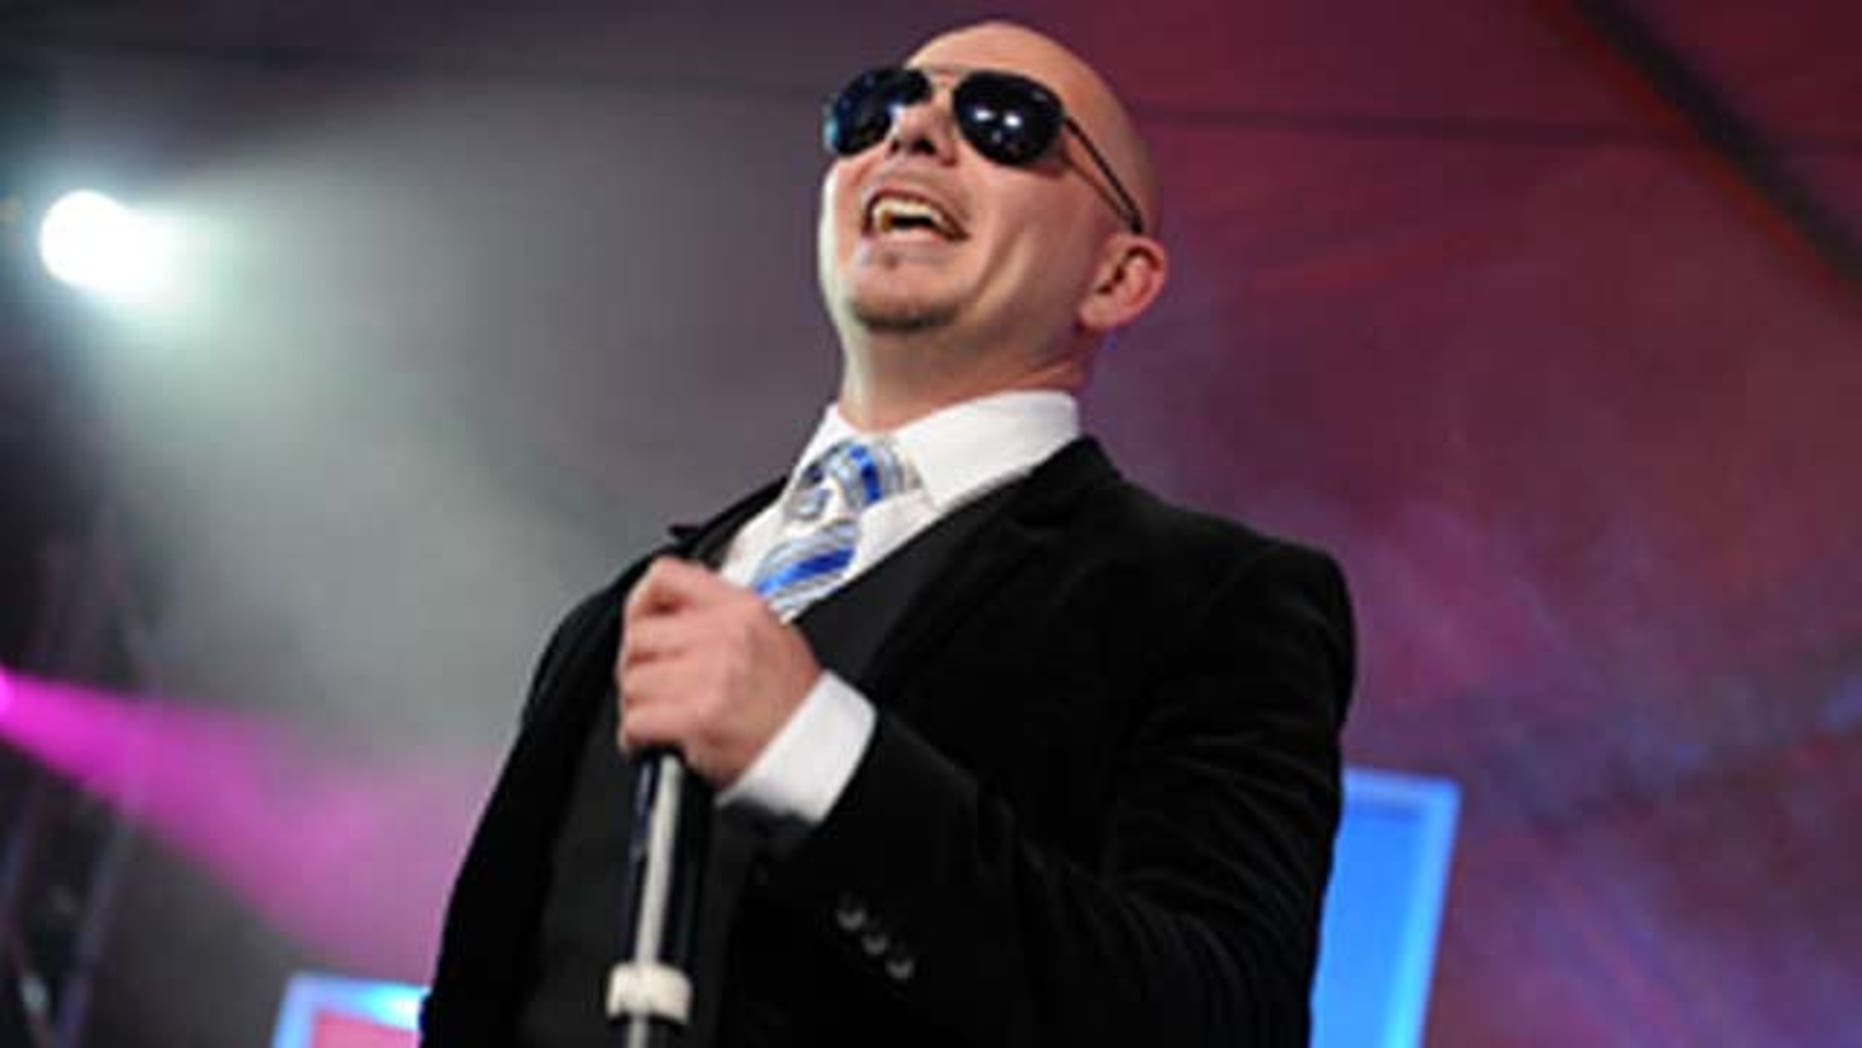 Feb. 05, 2011: Rapper Pitbull performs during the Bud Light Hotel event in Dallas, TX.